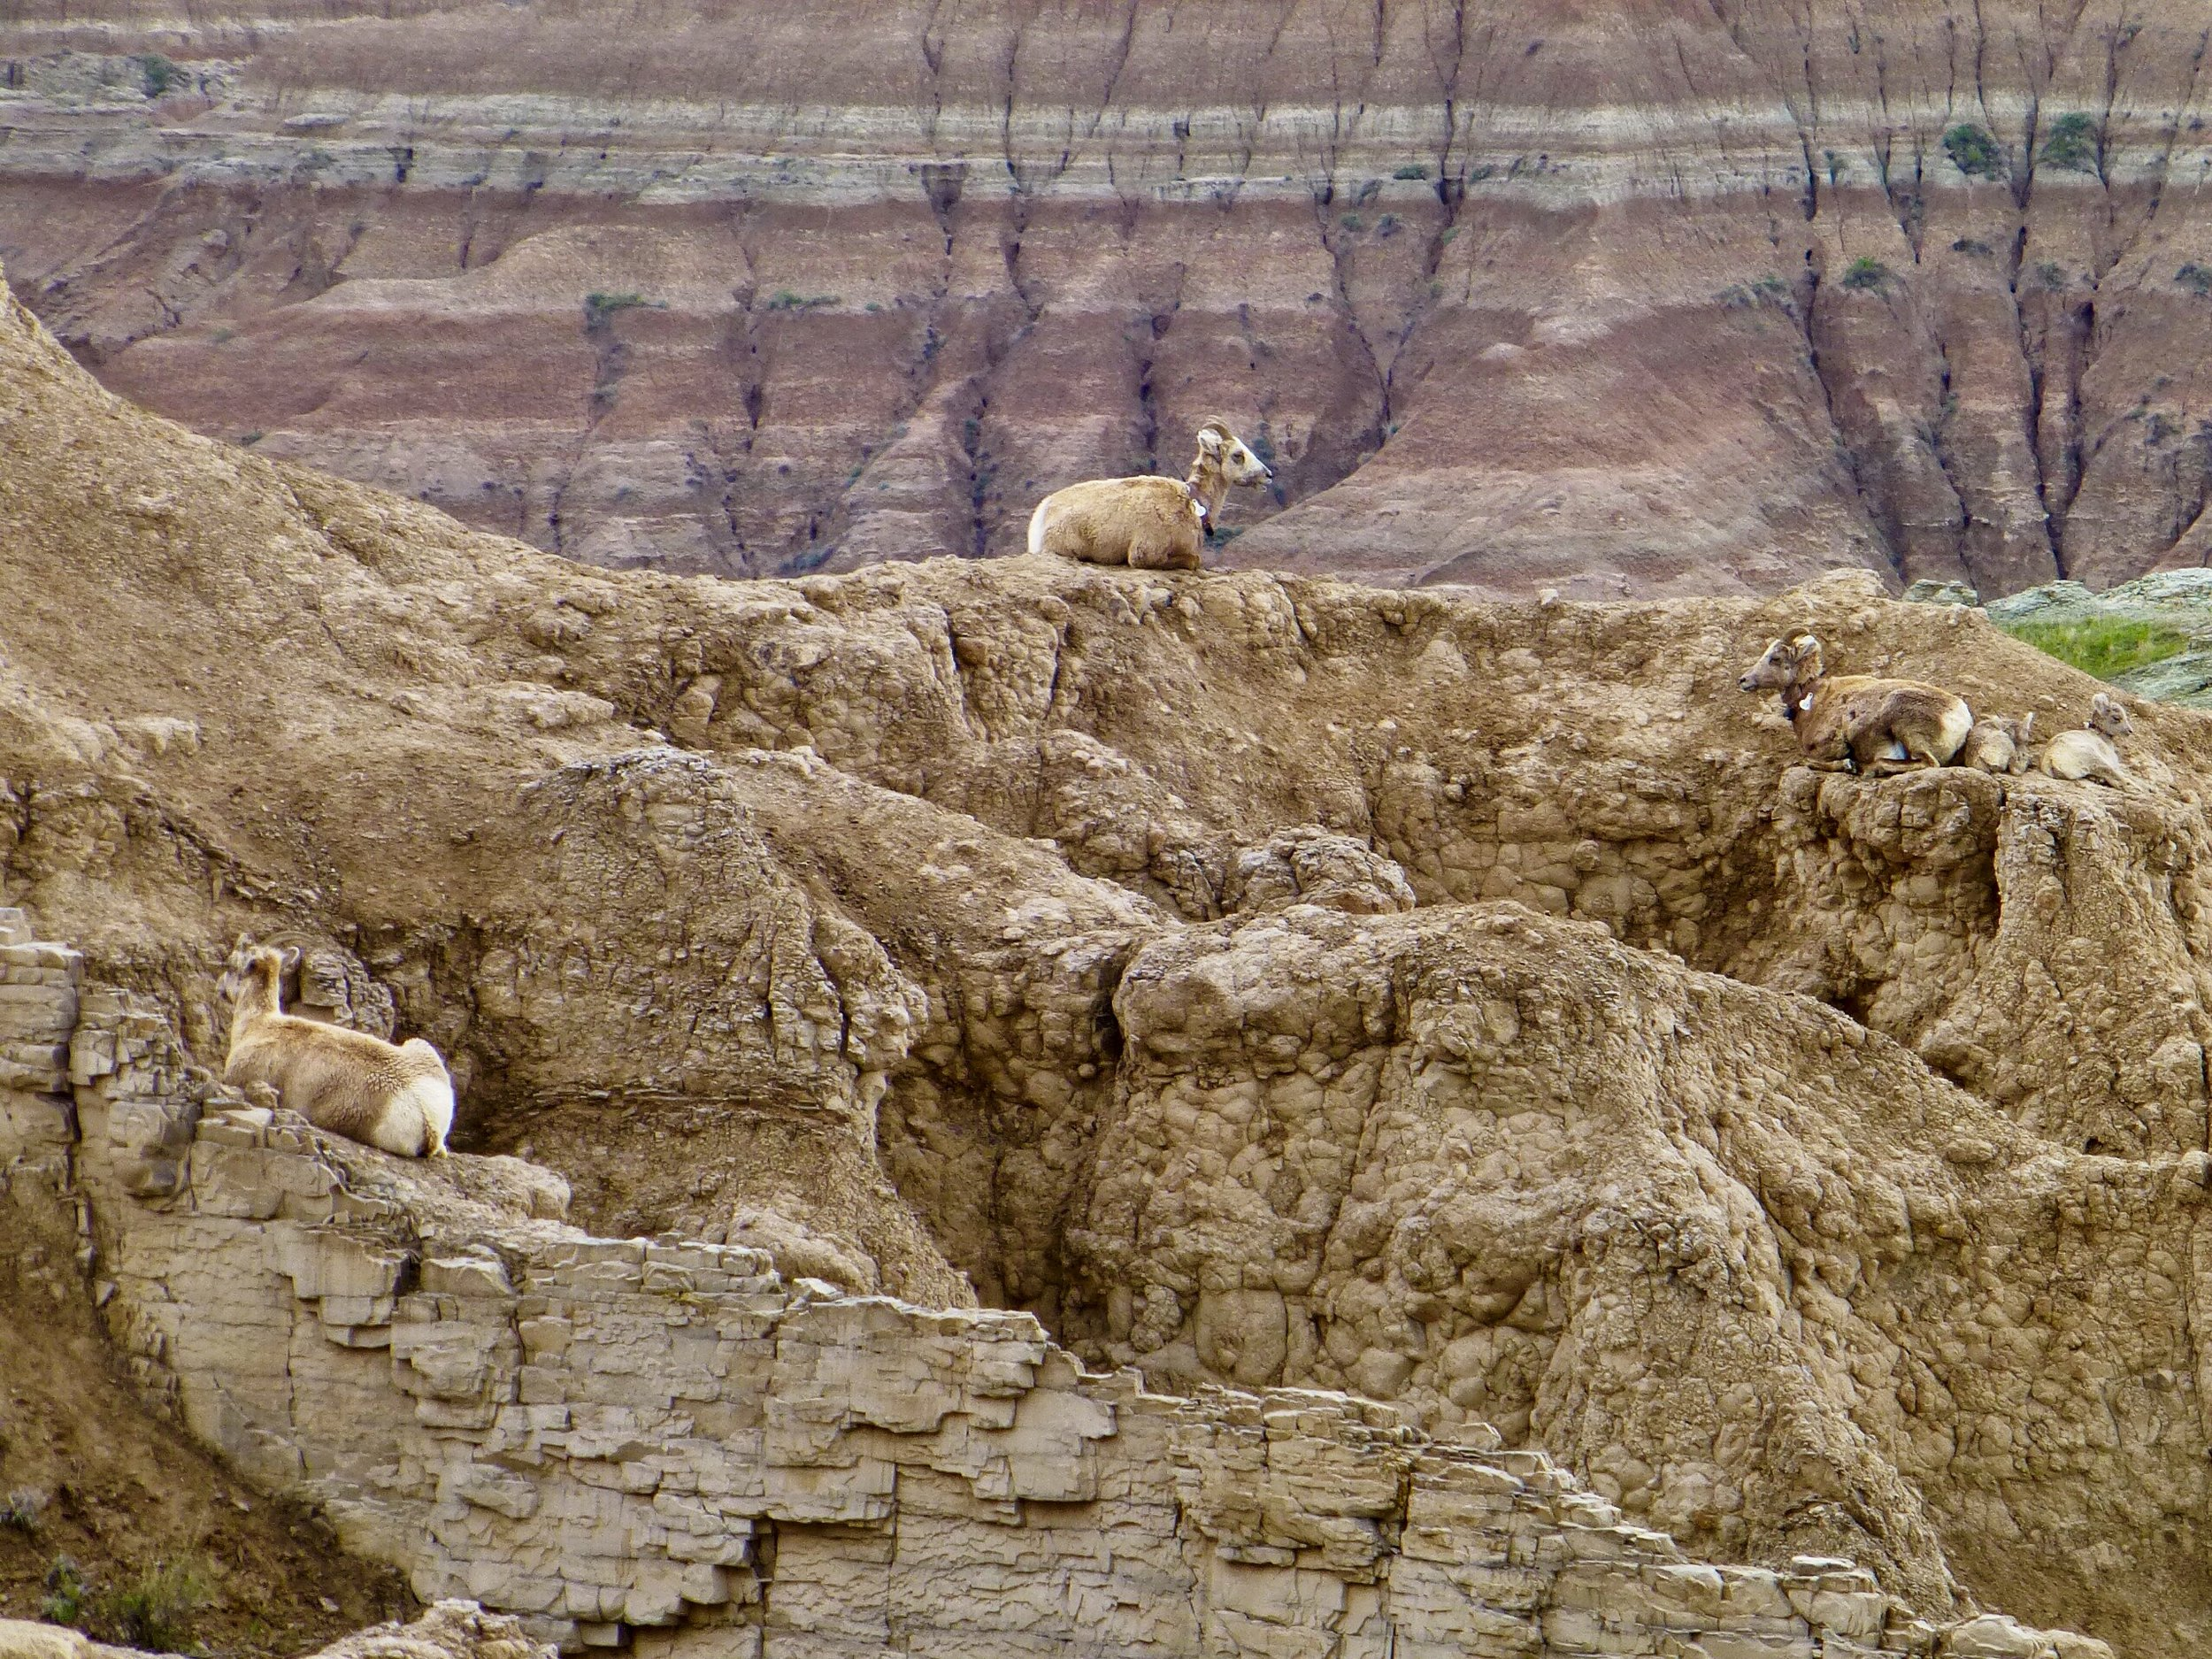 Can you find all five sheep?  Three adult ewes and two newborn lambs off to the right.